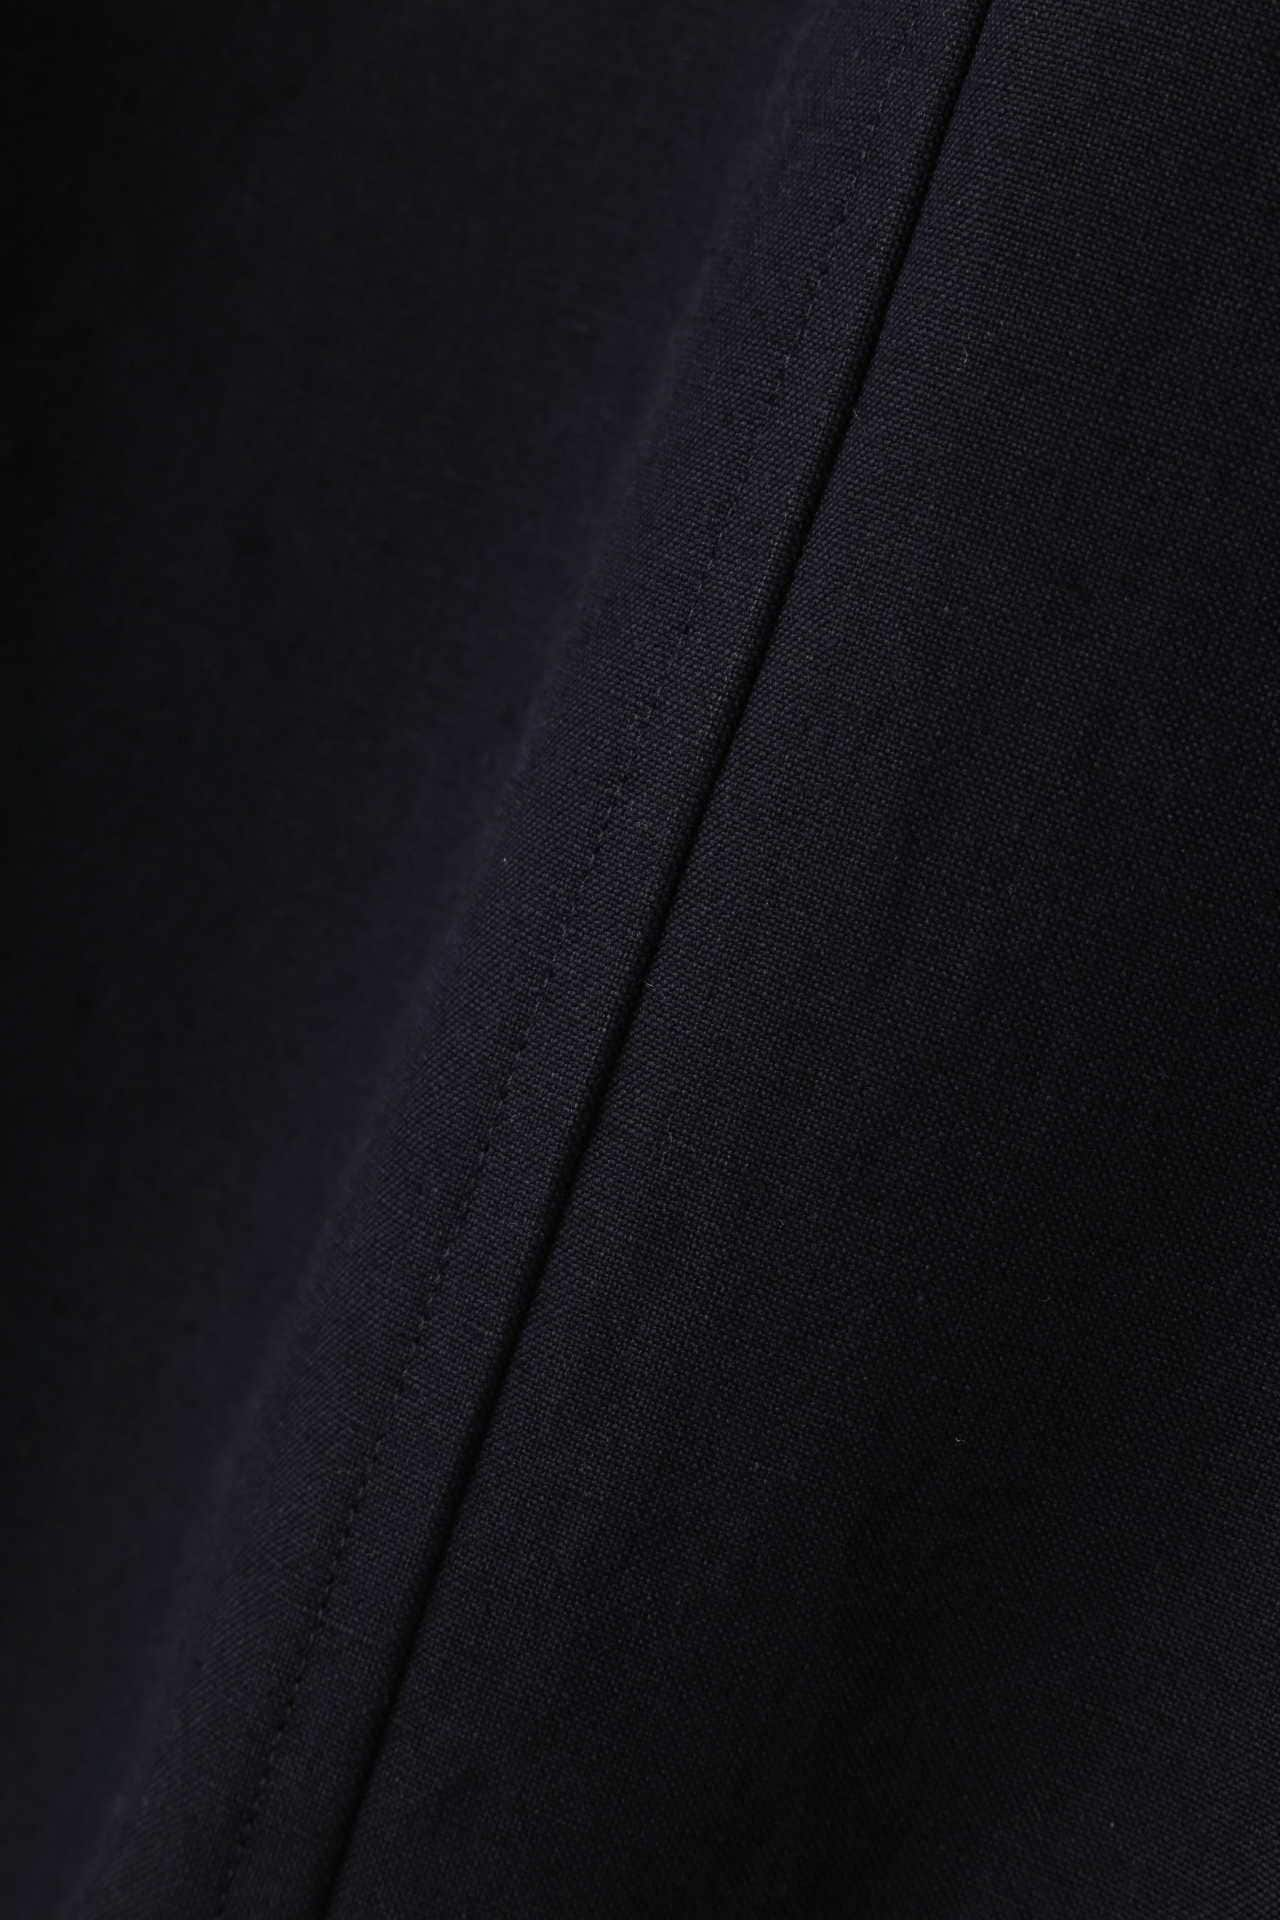 COTTON LINEN PLAIN WEAVE